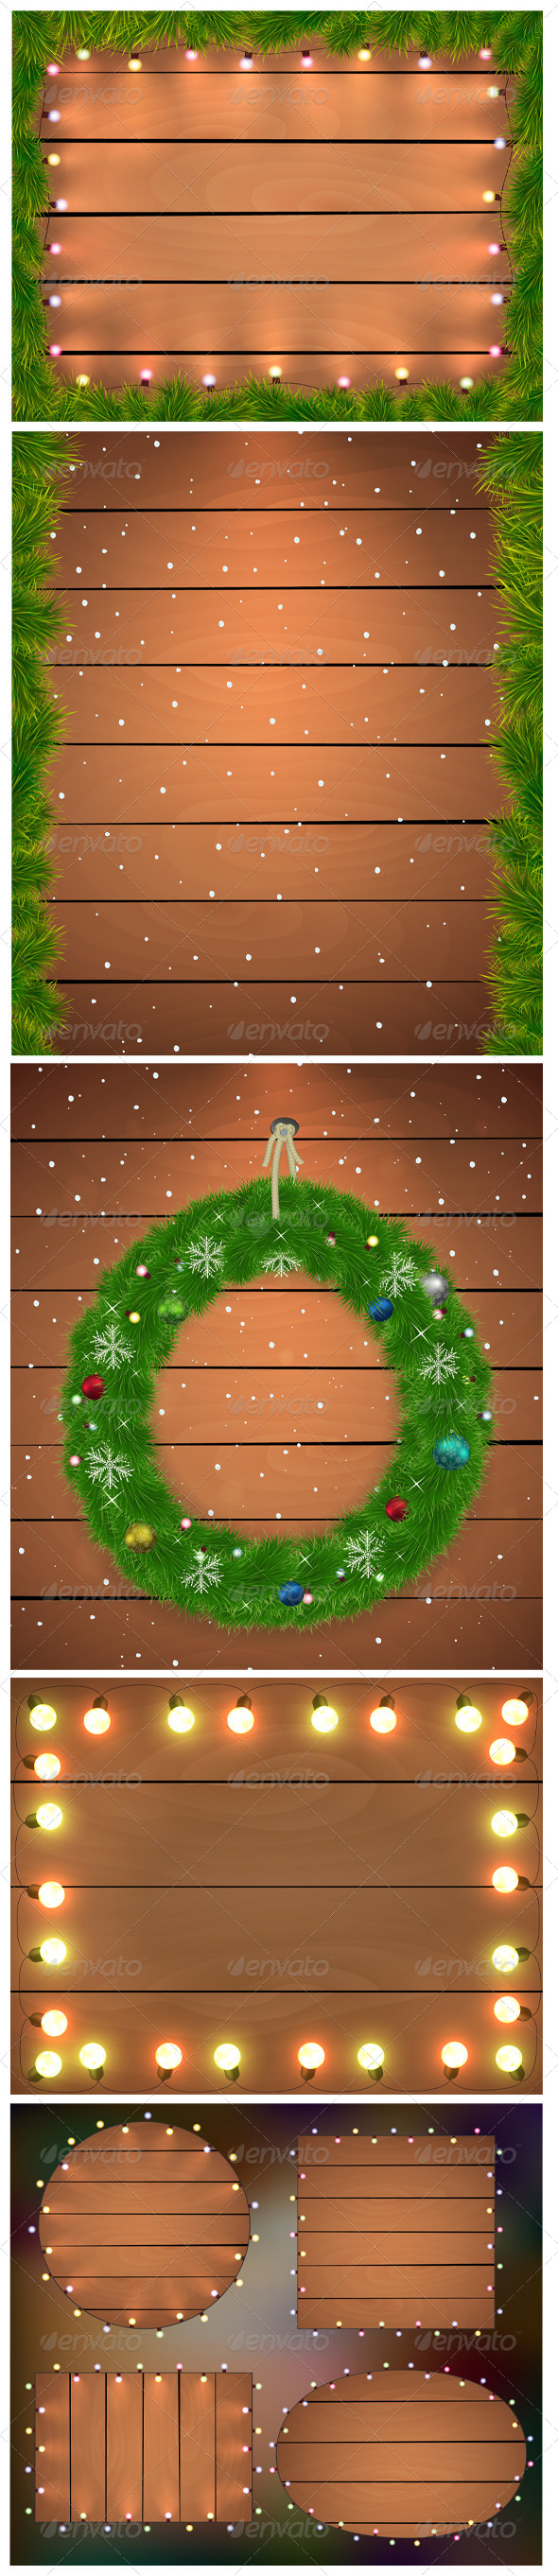 GraphicRiver Christmas Backgrounds 6485971